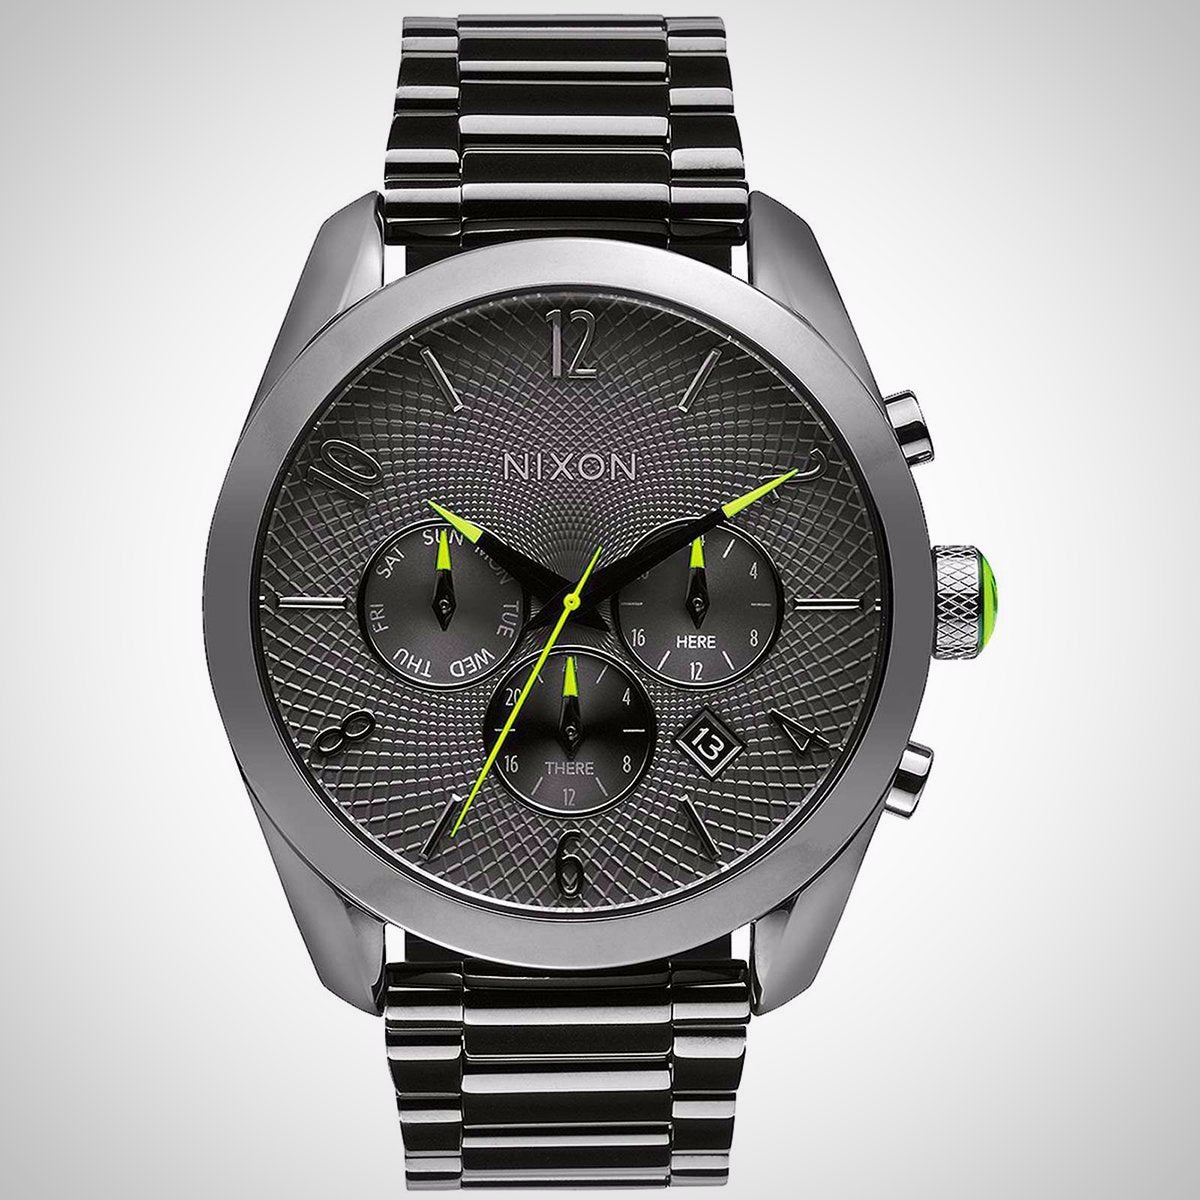 Nixon Bullet Chrono A366-131 Ladies' Black-Ion Plated Watch